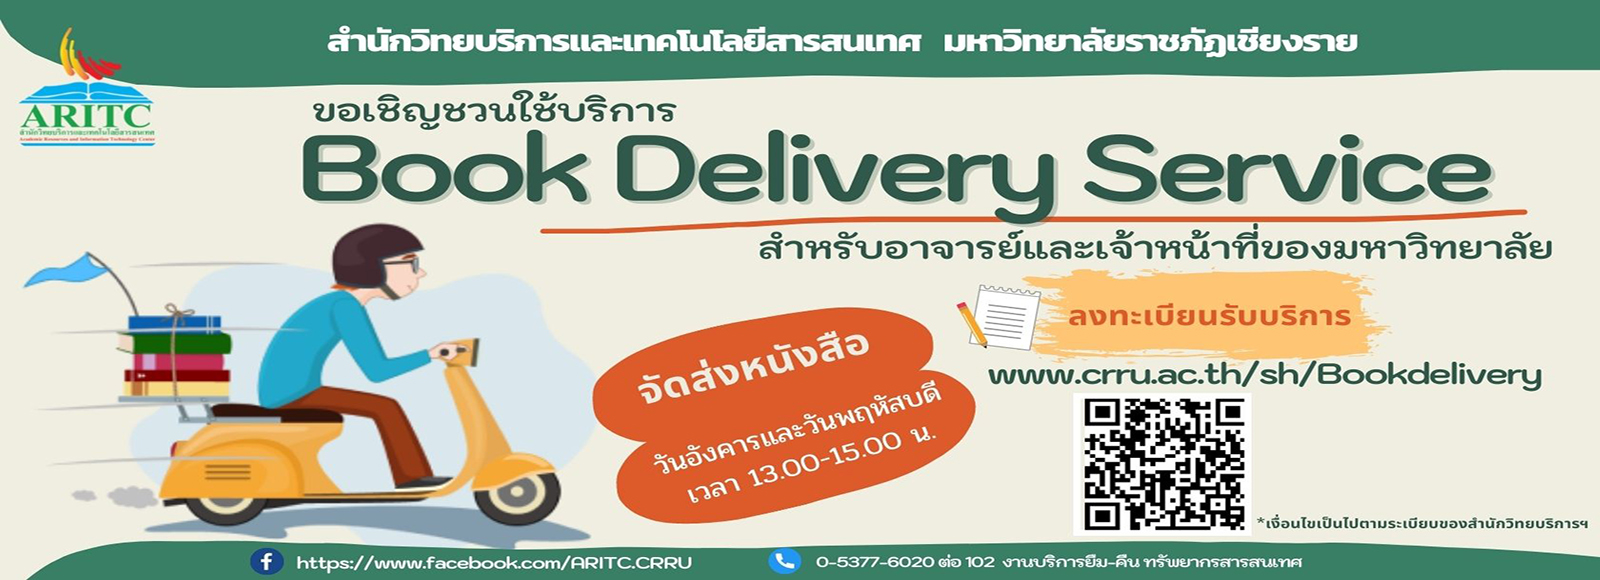 bookdelivery